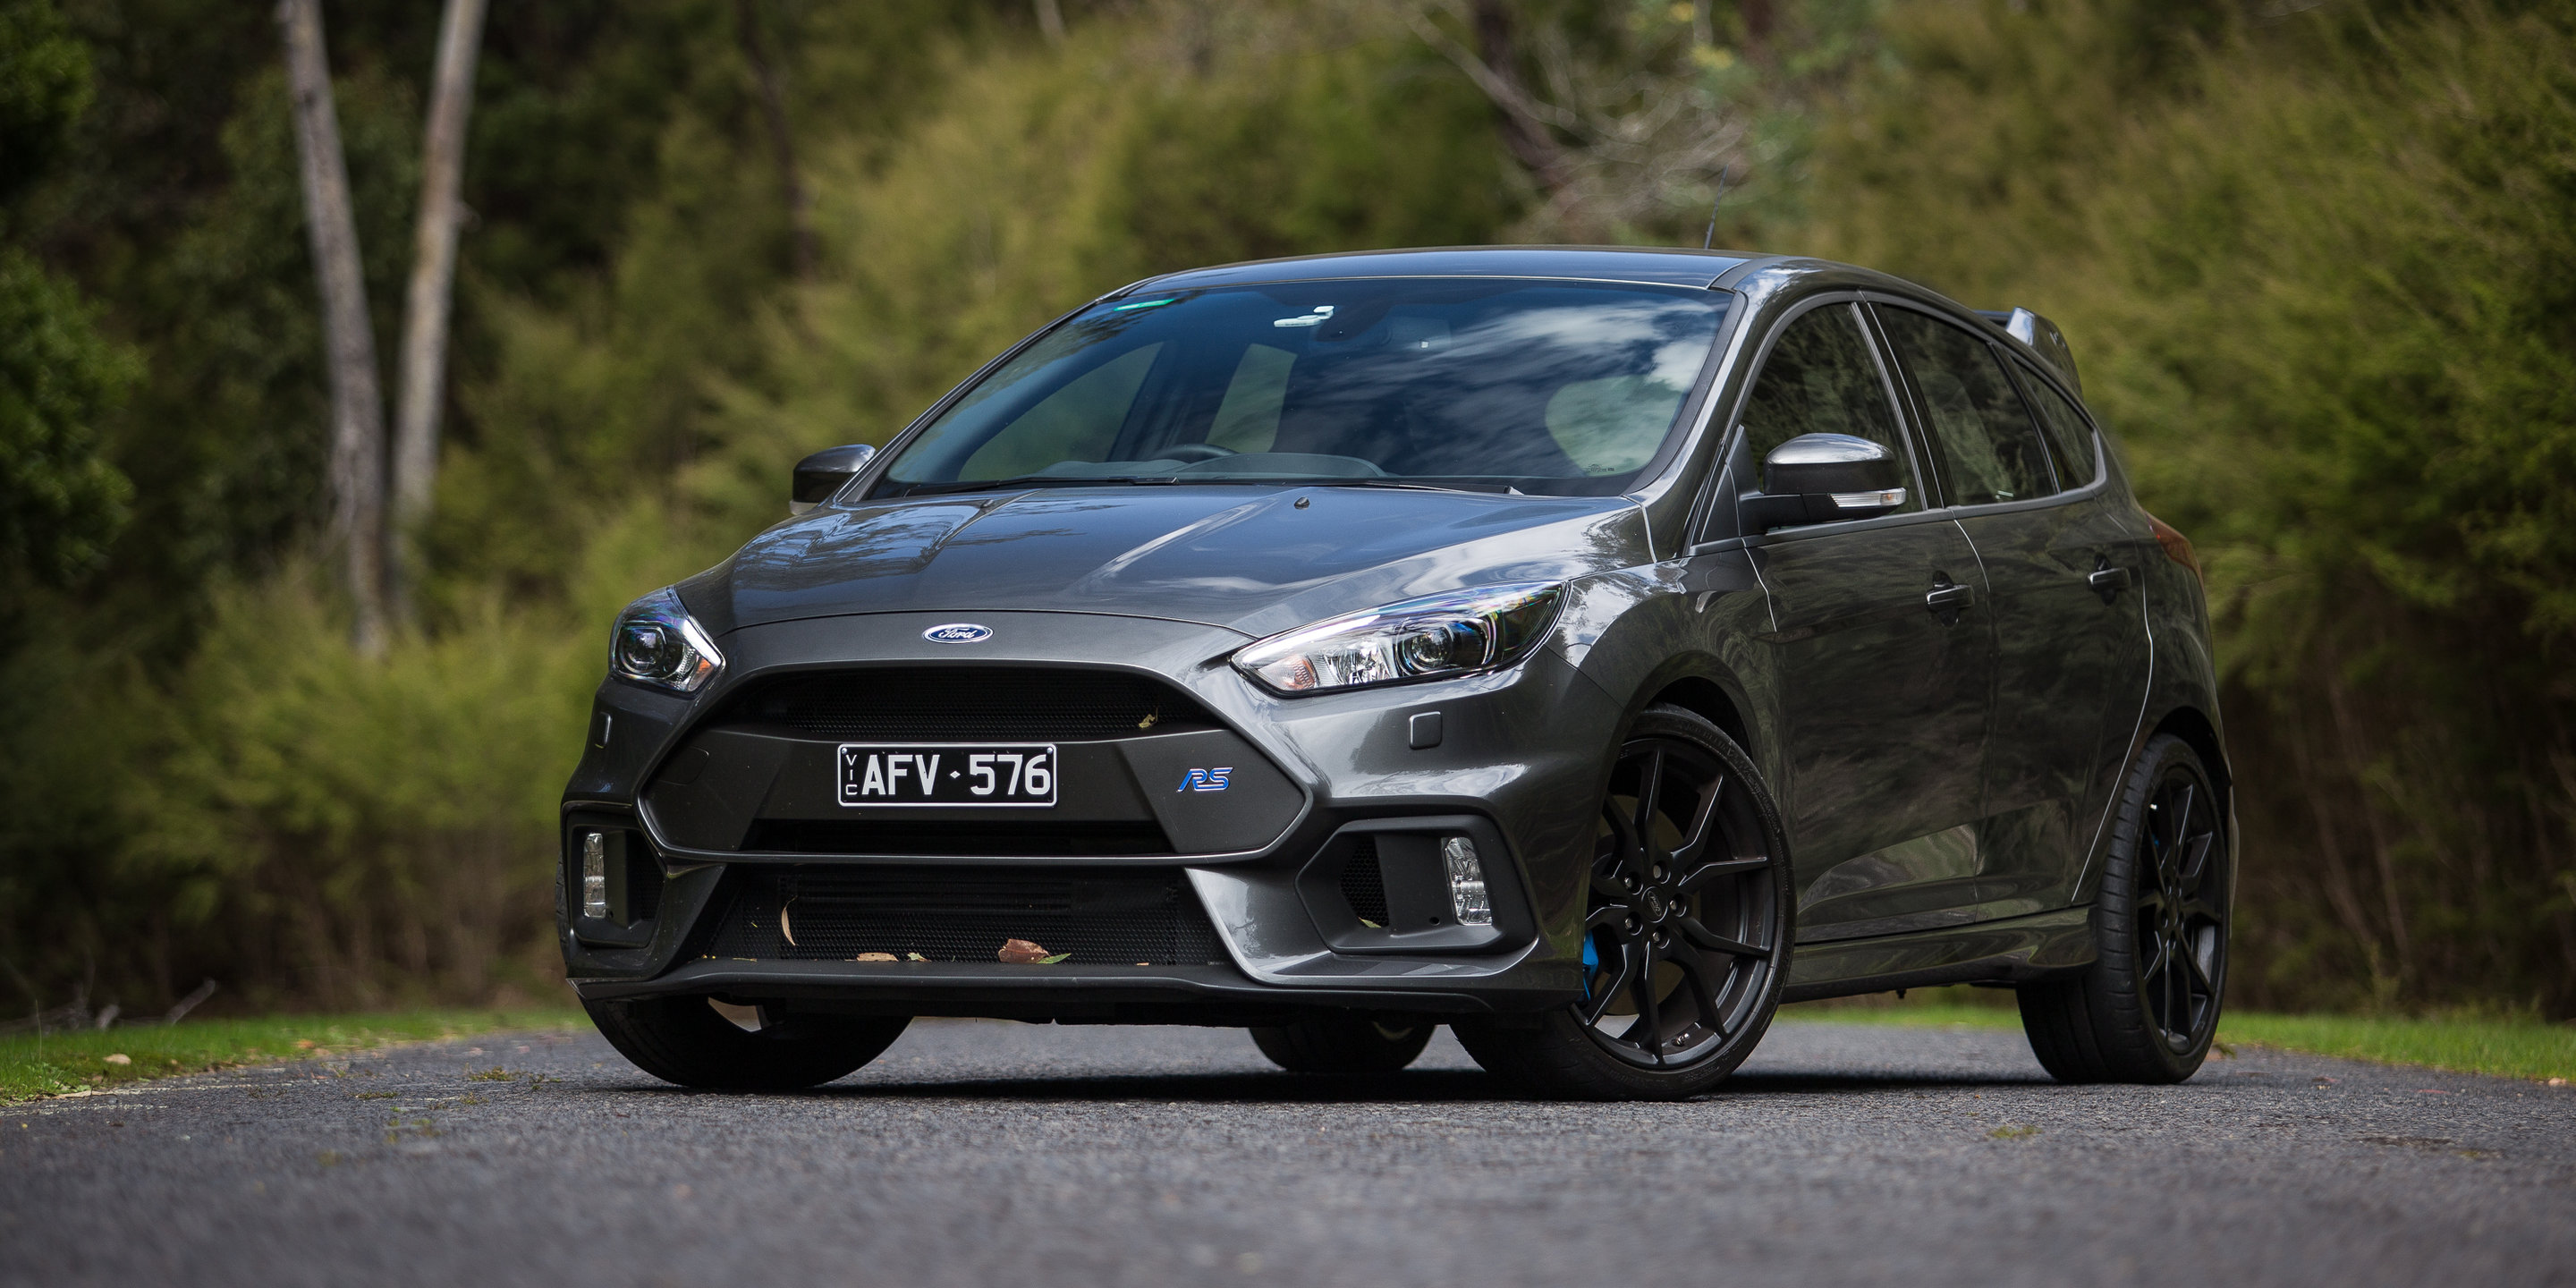 ford focus rs power modifications and tuning mind over motor rh mindovermotor com